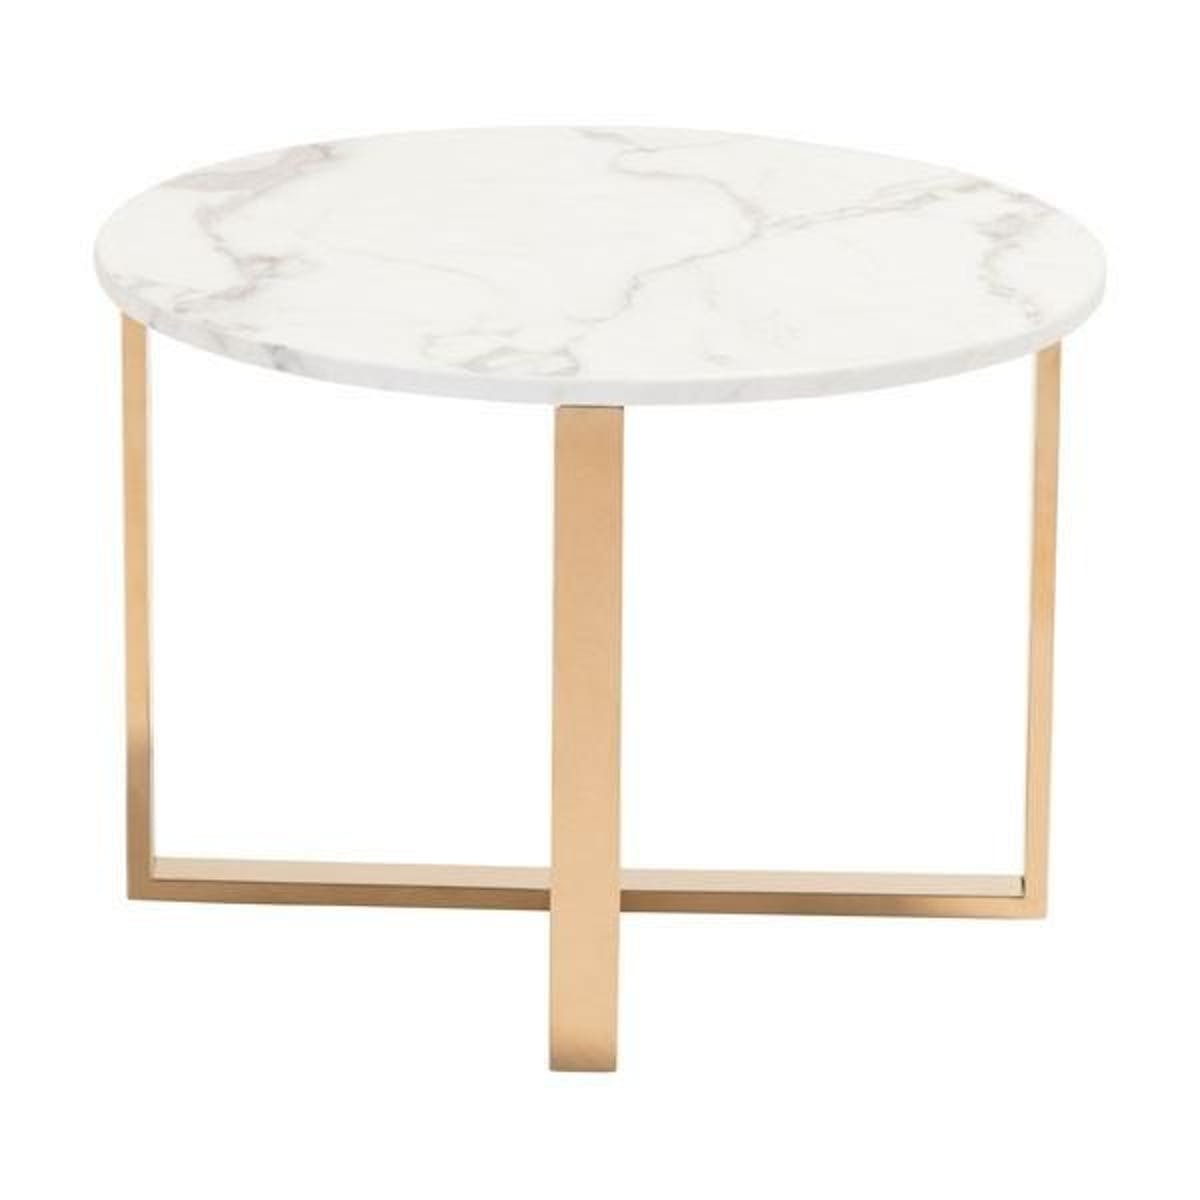 wood game table probably outrageous best the zuo modern globe end modish white round bedside purple lamp legs designer lamps kohls free shipping coupon code yellow dresser